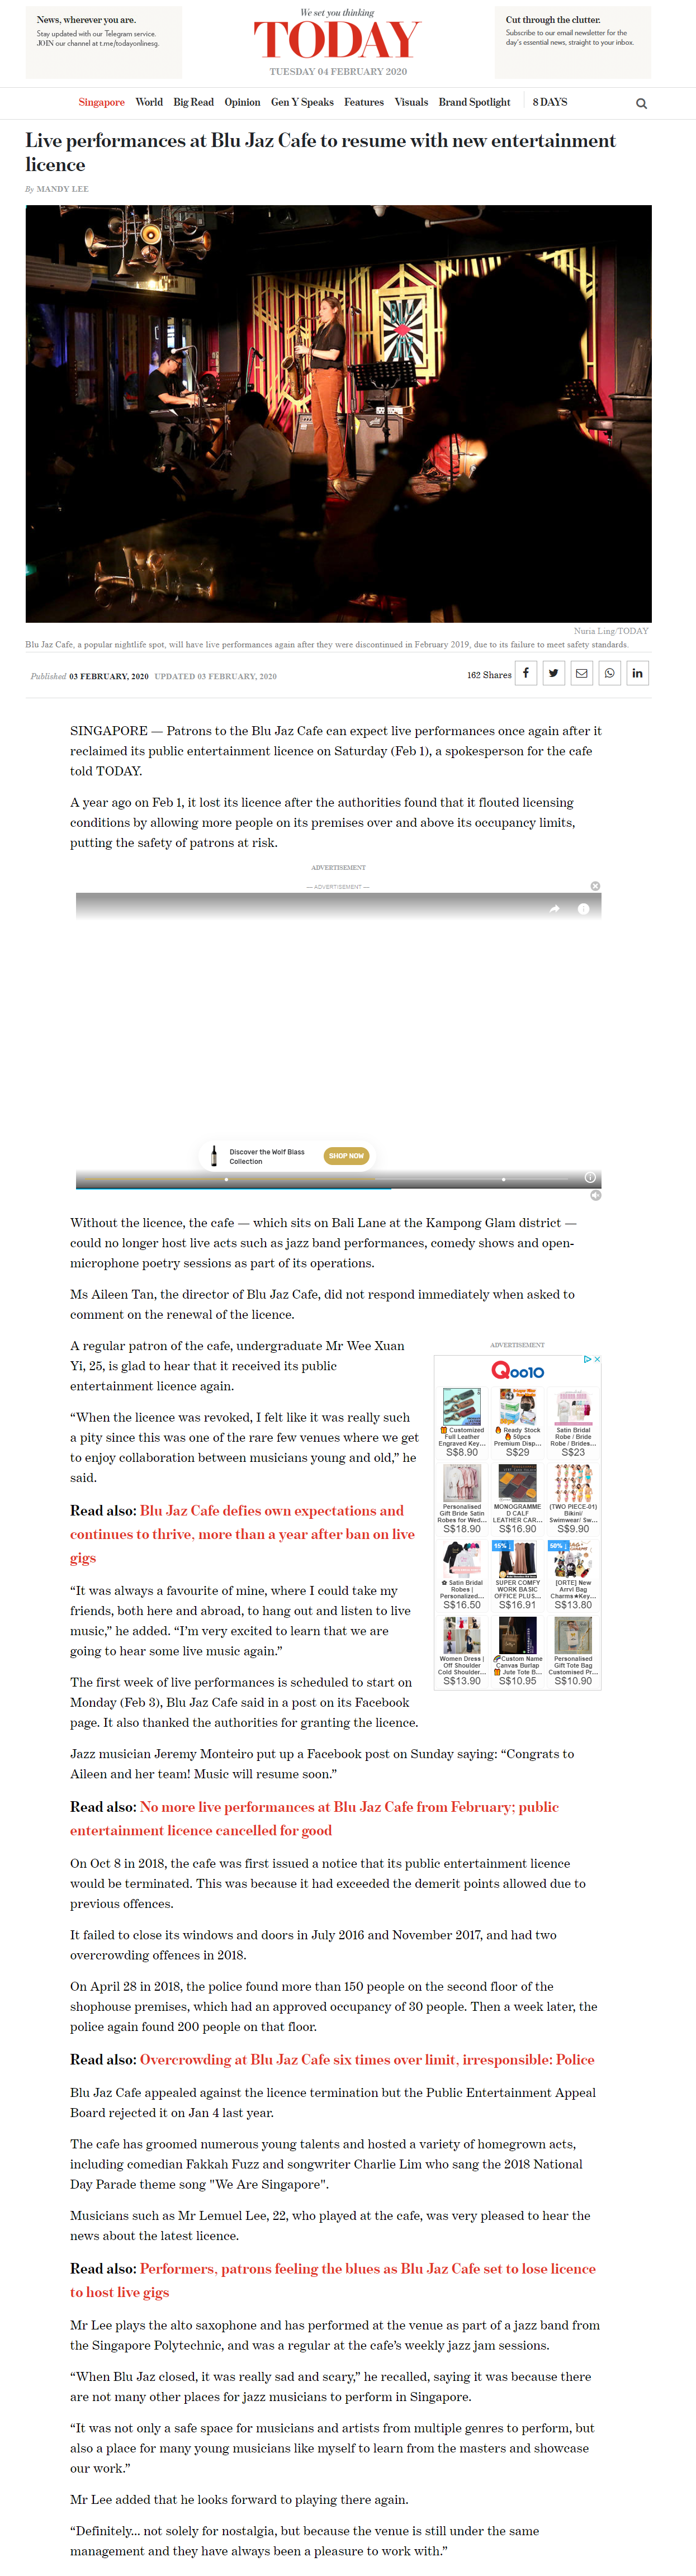 live performance at blu jaz cafe